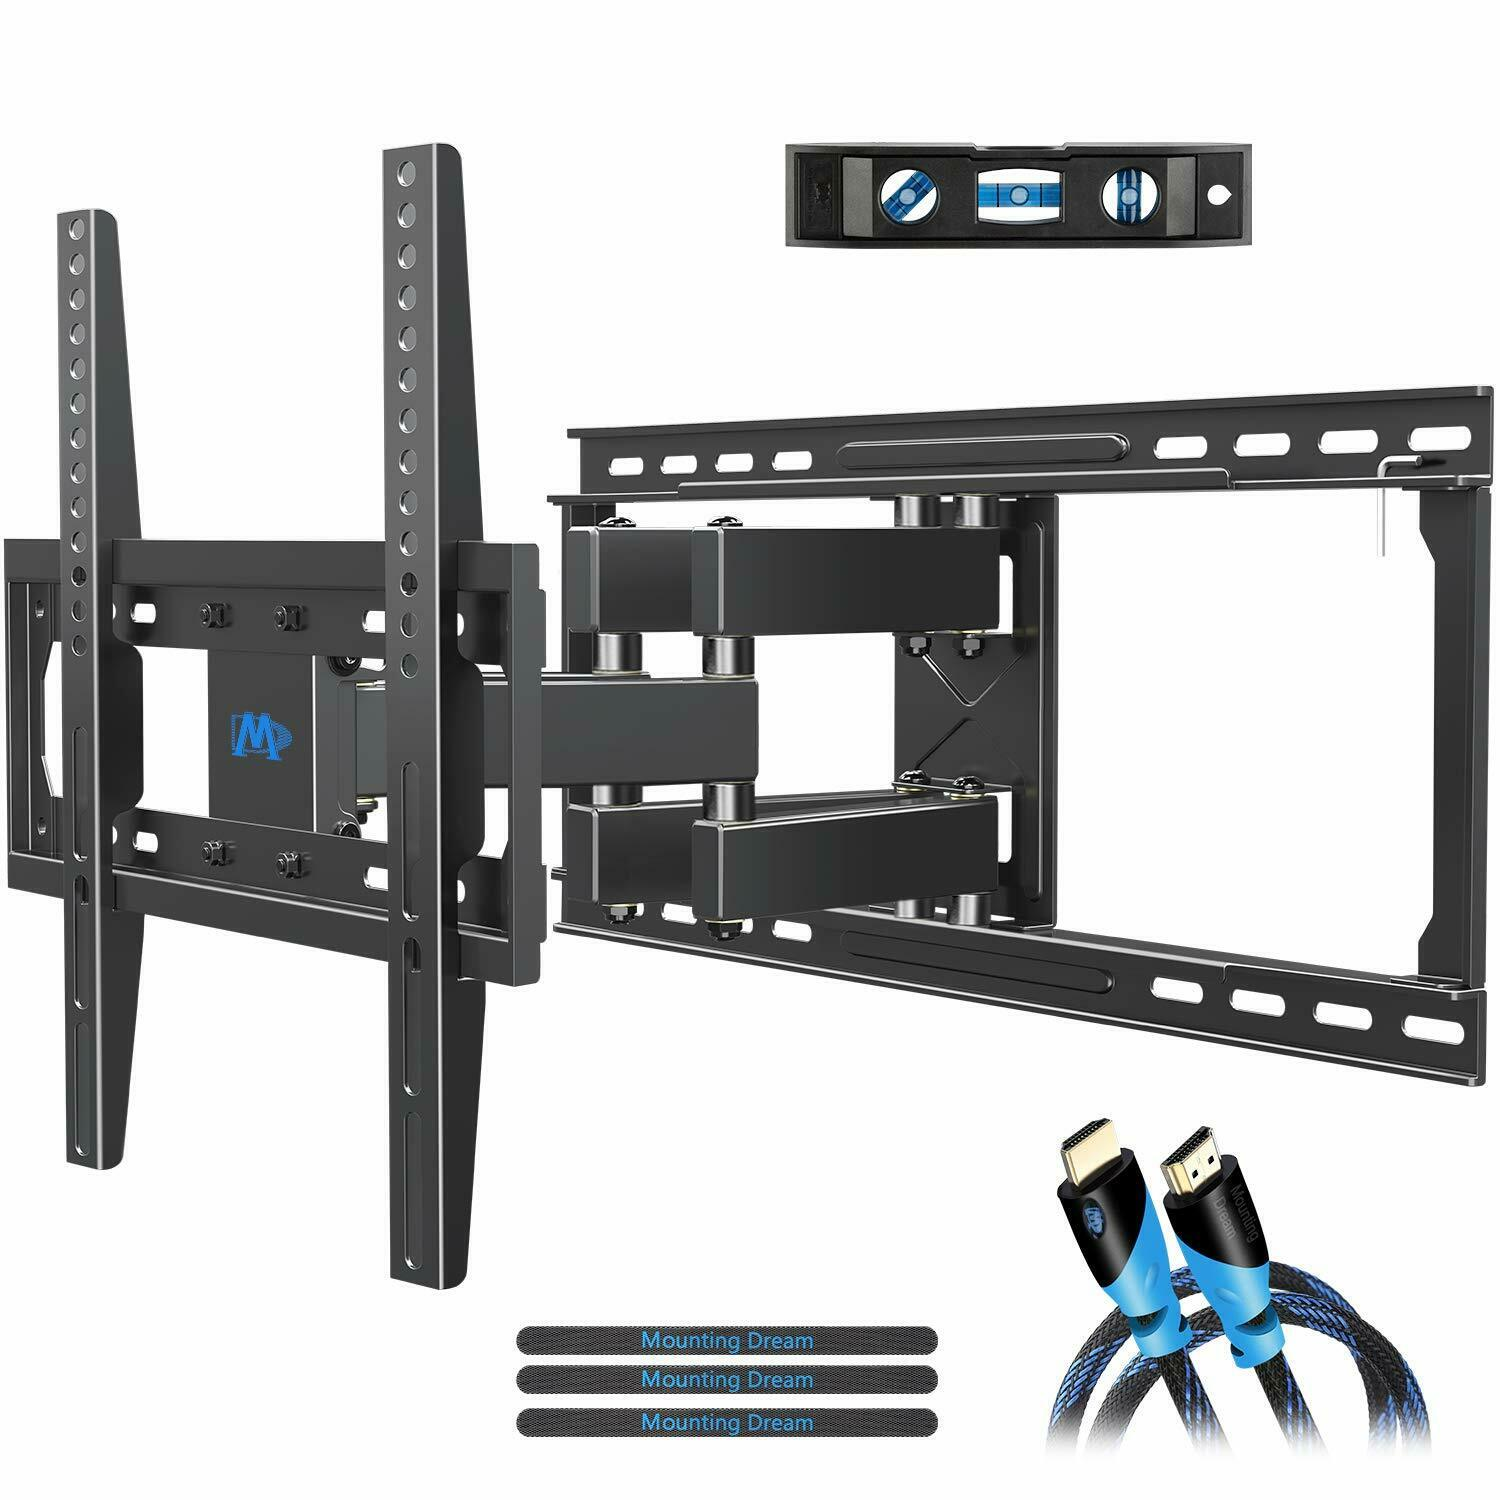 Mounting Dream TV Wall Mount TV Bracket for Most 26-55 Inch